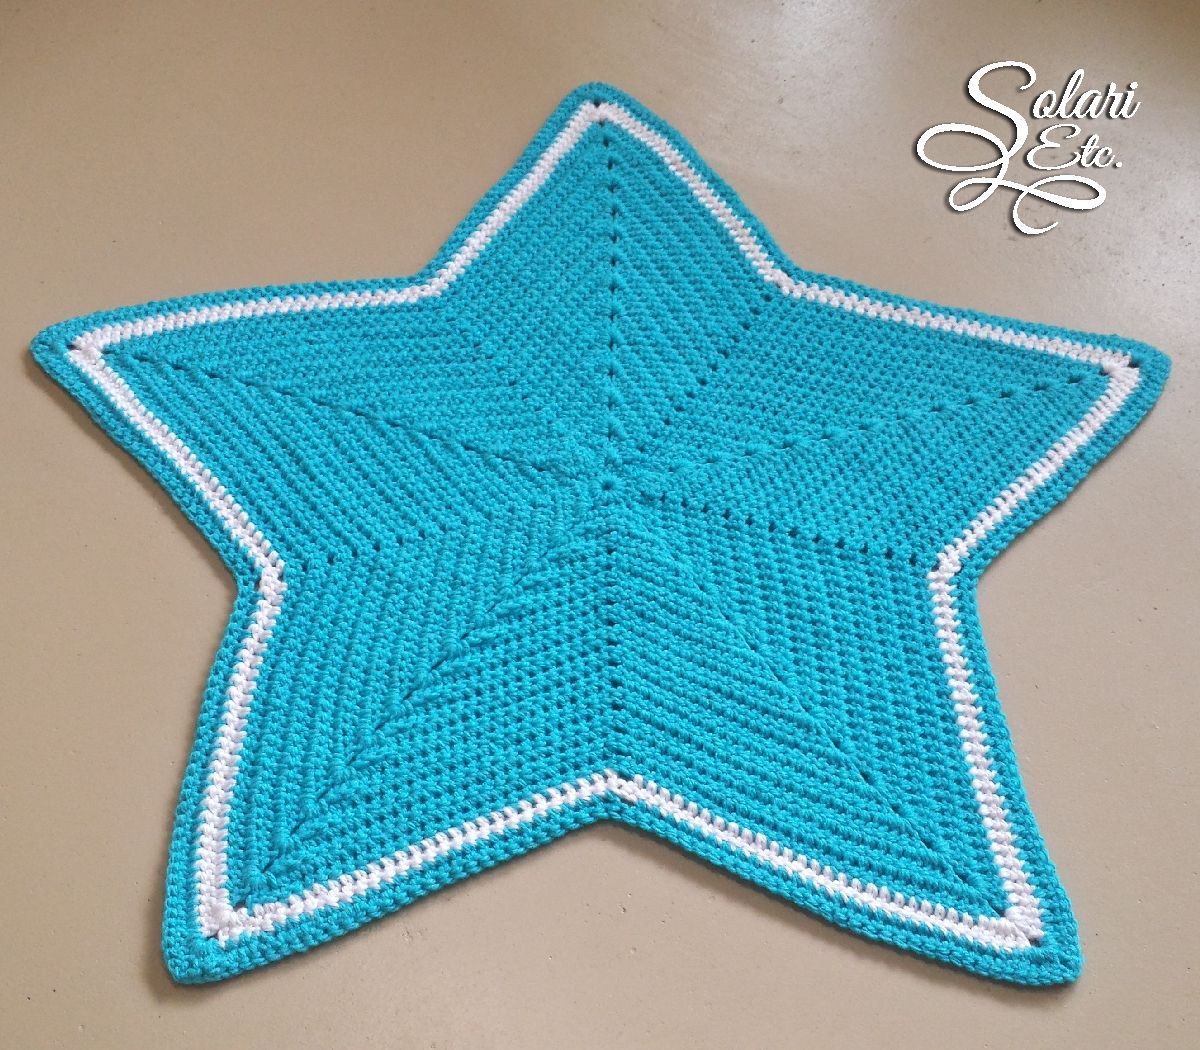 Crochet} Easy Christmas Stars | Crochet star patterns, Christmas ... | 1050x1200